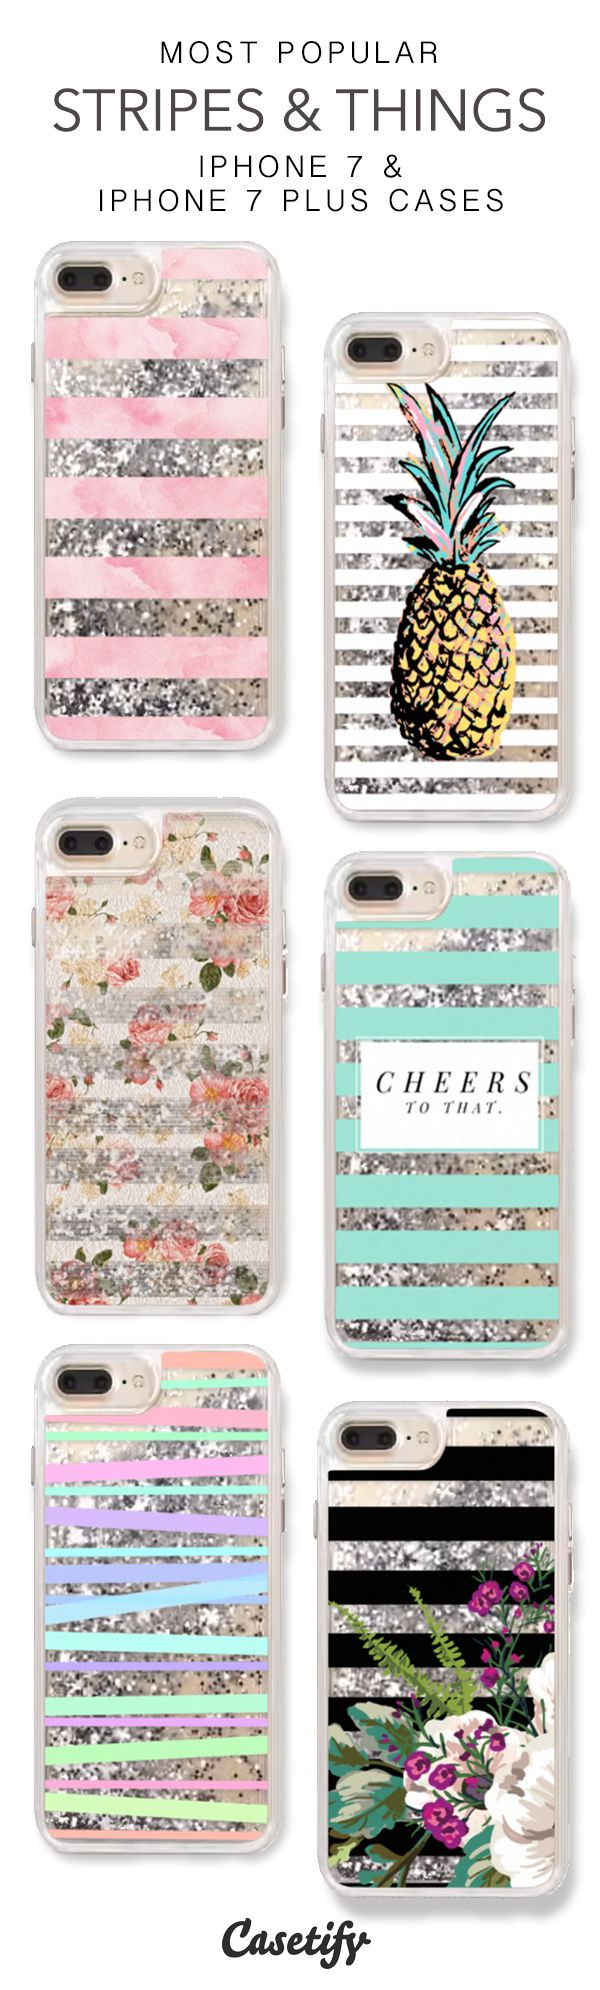 Most Popular Stripes & Things iPhone 7 Cases & iPhone 7 Plus Cases. More liquid glitter iPhone case here > https://www.casetify.com/en_US/collections/iphone-7-glitter-cases#/?vc=n7aQ9dXB6q